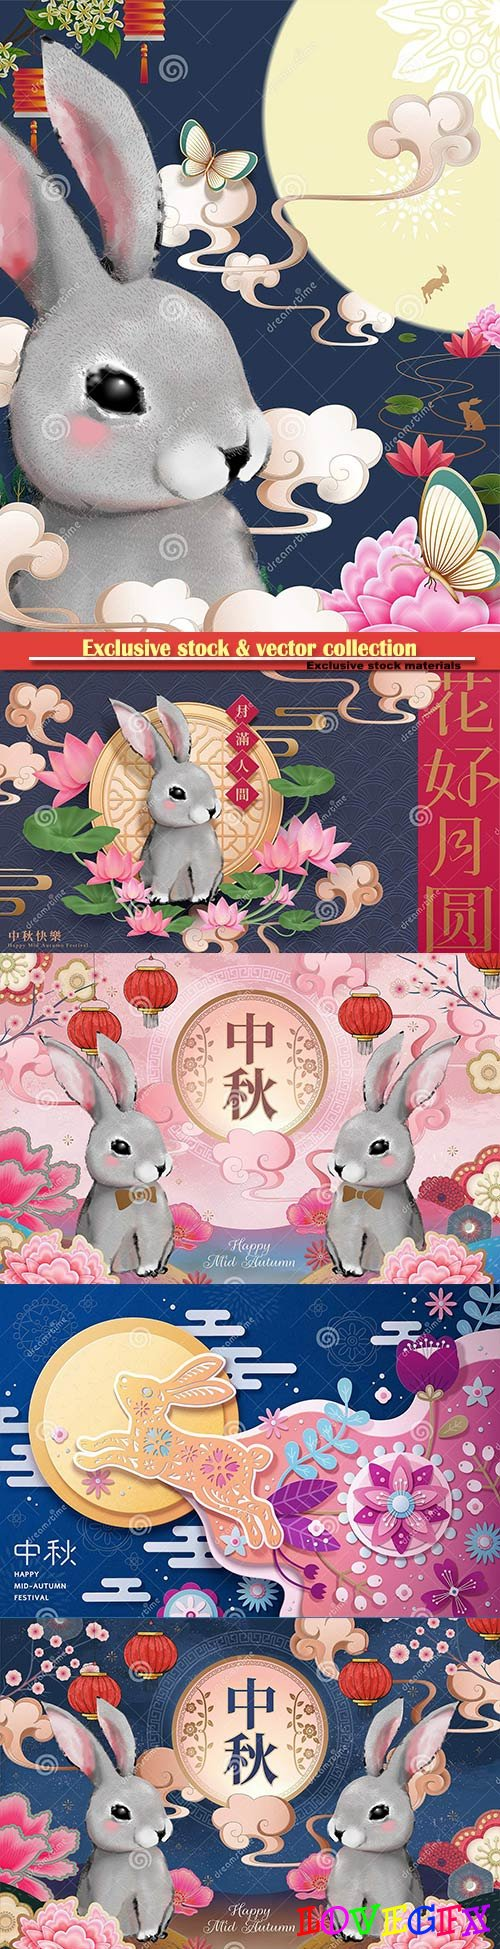 Cute fluffy grey rabbit and lotus for Mid autumn festival design